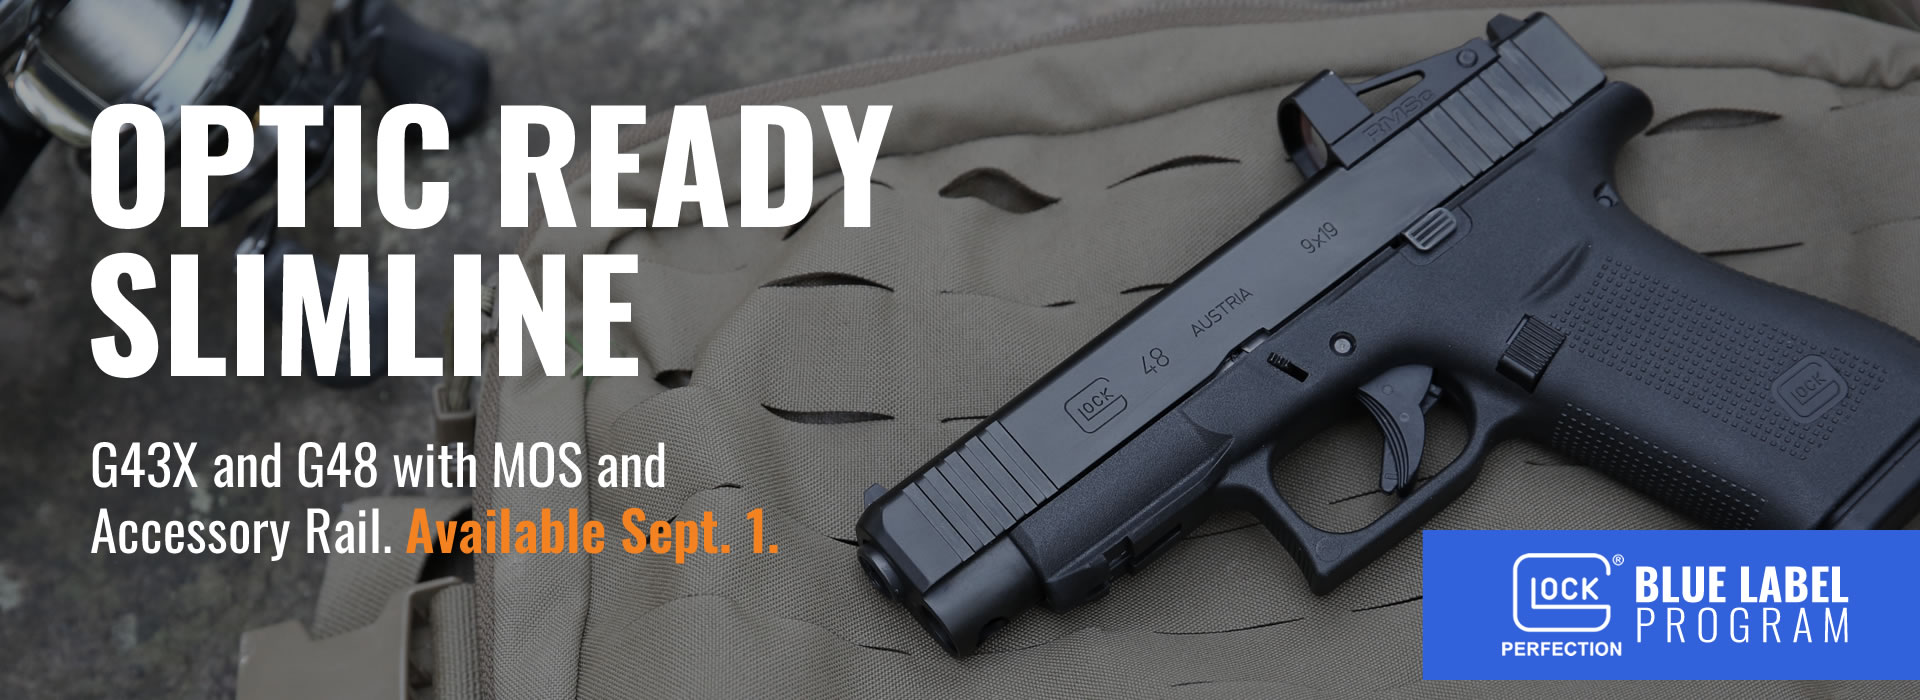 Glock 43x and 48 MOS Slimline Blue Label Pistols - Available September 1st, 2020